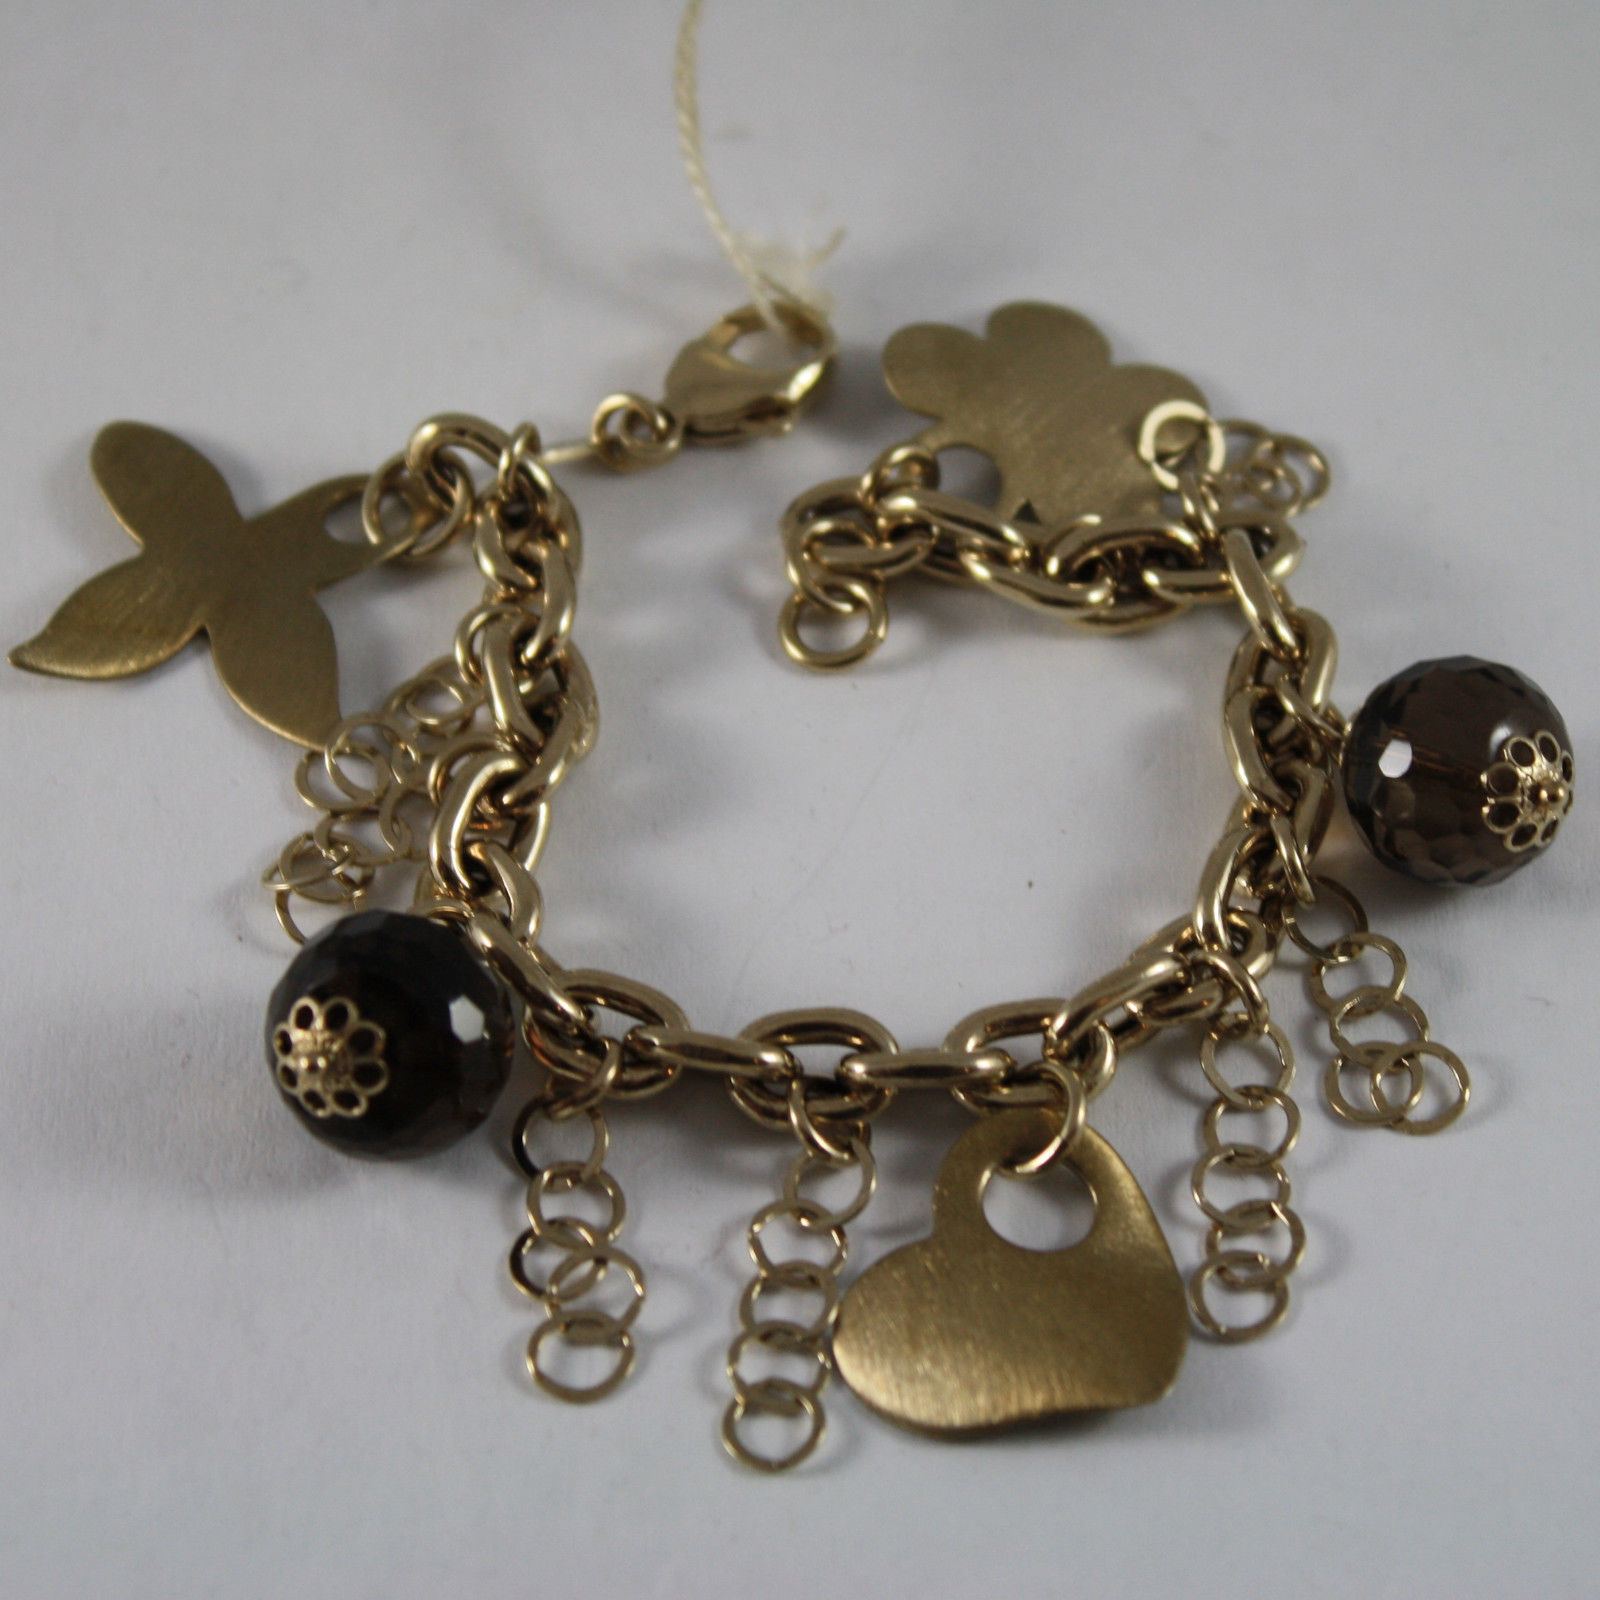 .925 RHODIUM SILVER YELLOW GOLD PLATED BRACELET WITH SMOKY QUARTZ AND CHARMS